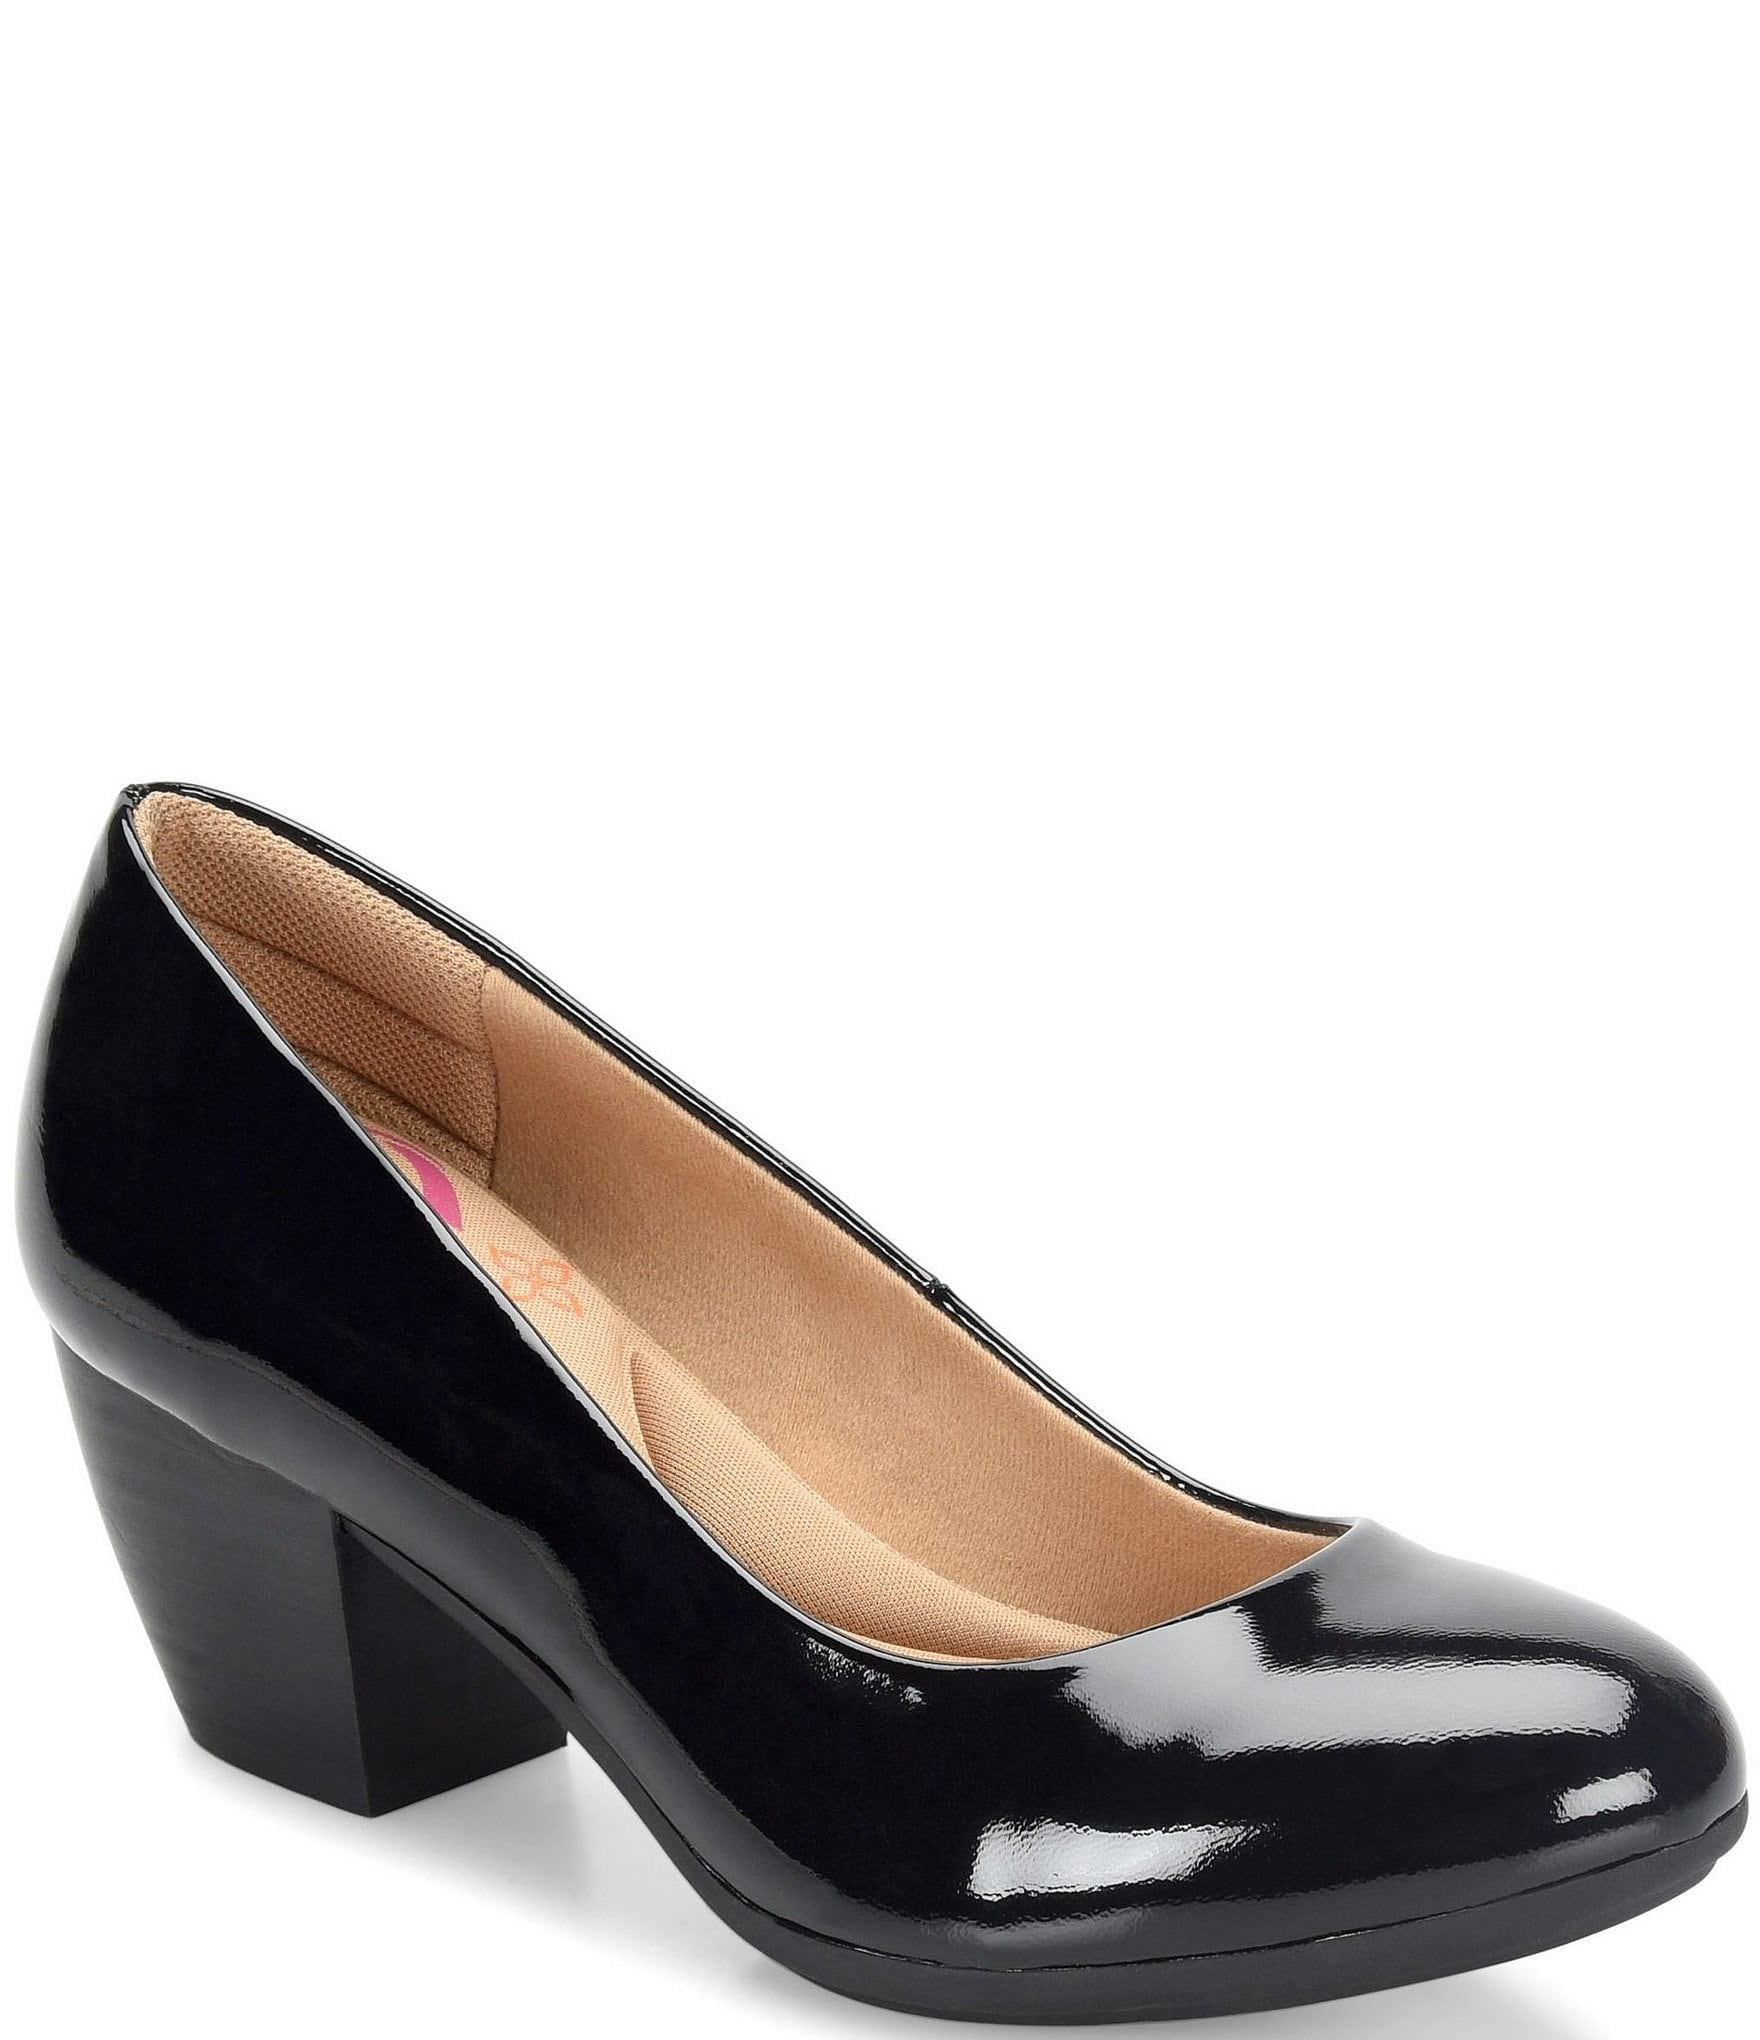 Memory Foam Patent Leather Shoes